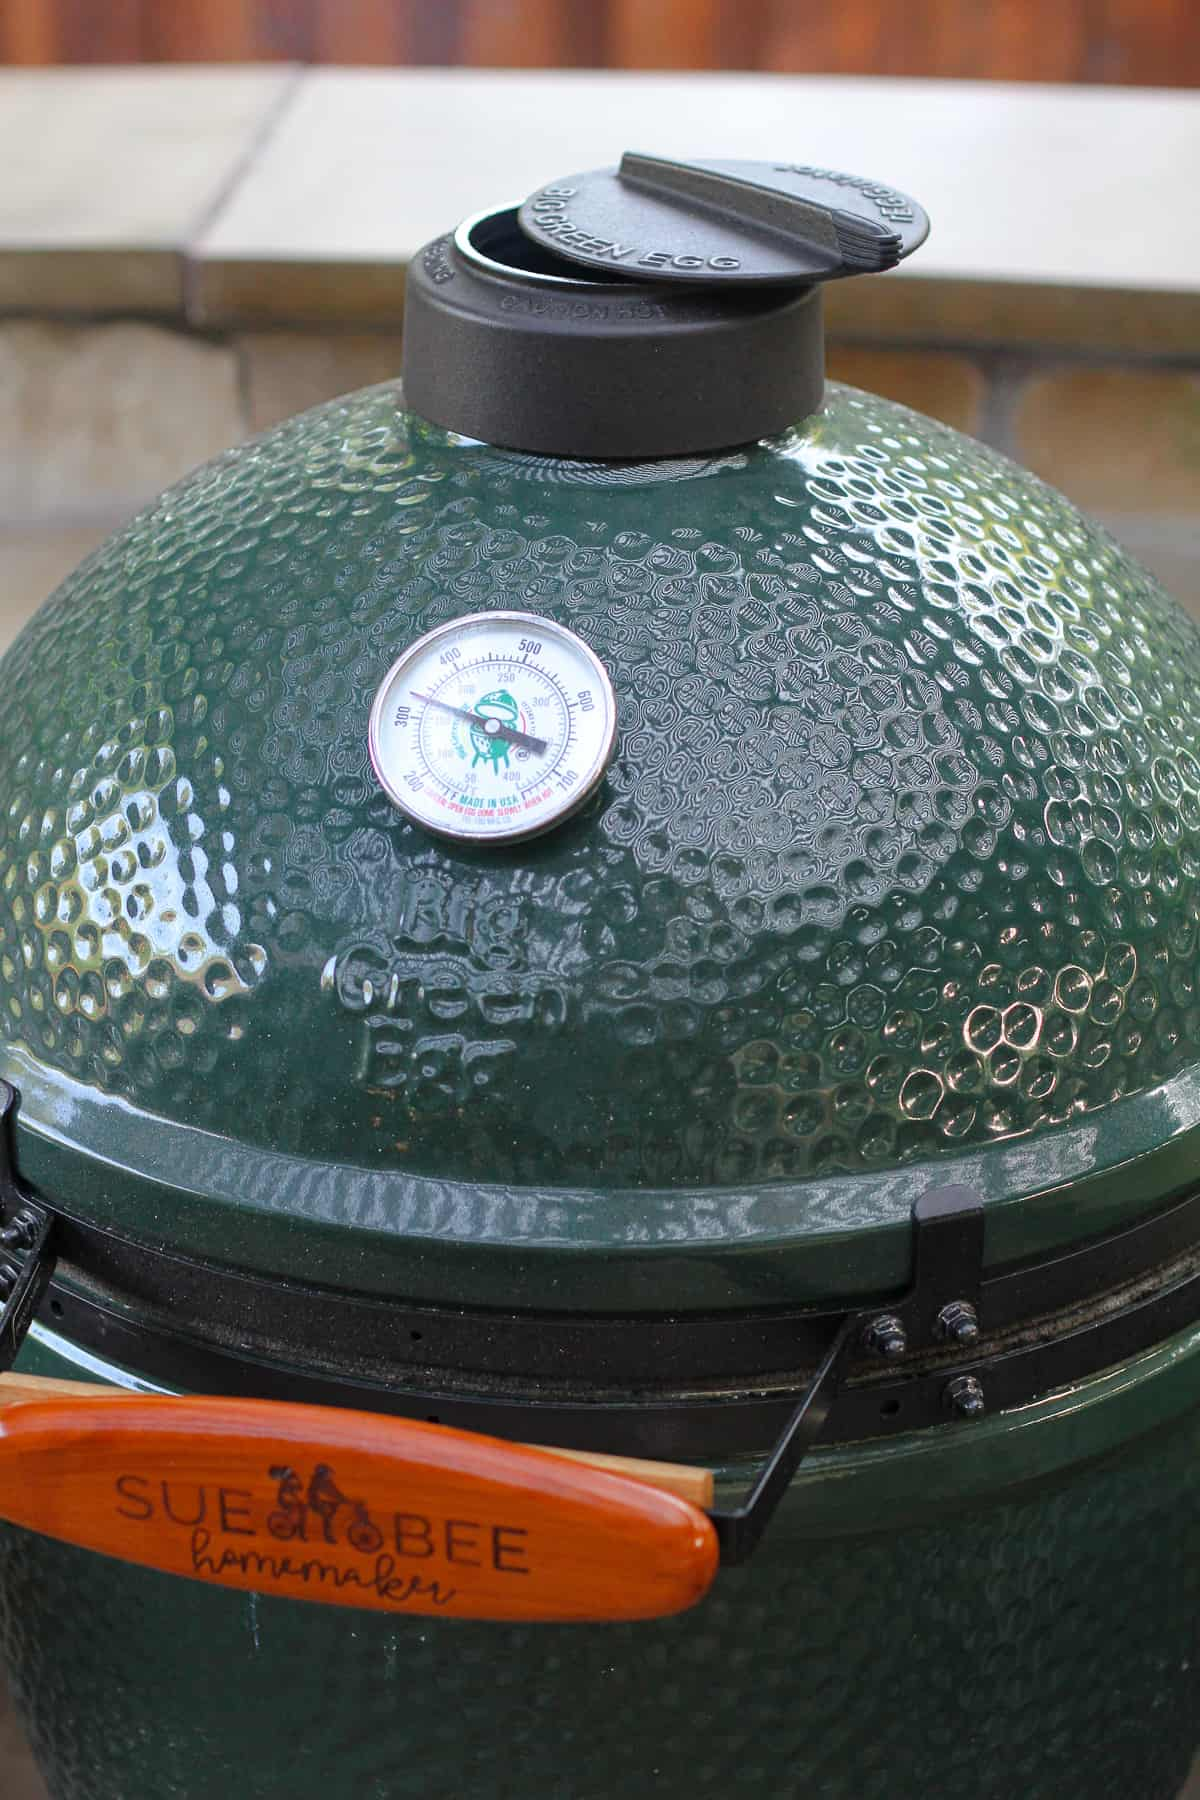 Our Big Green Egg heated to 350 degrees.